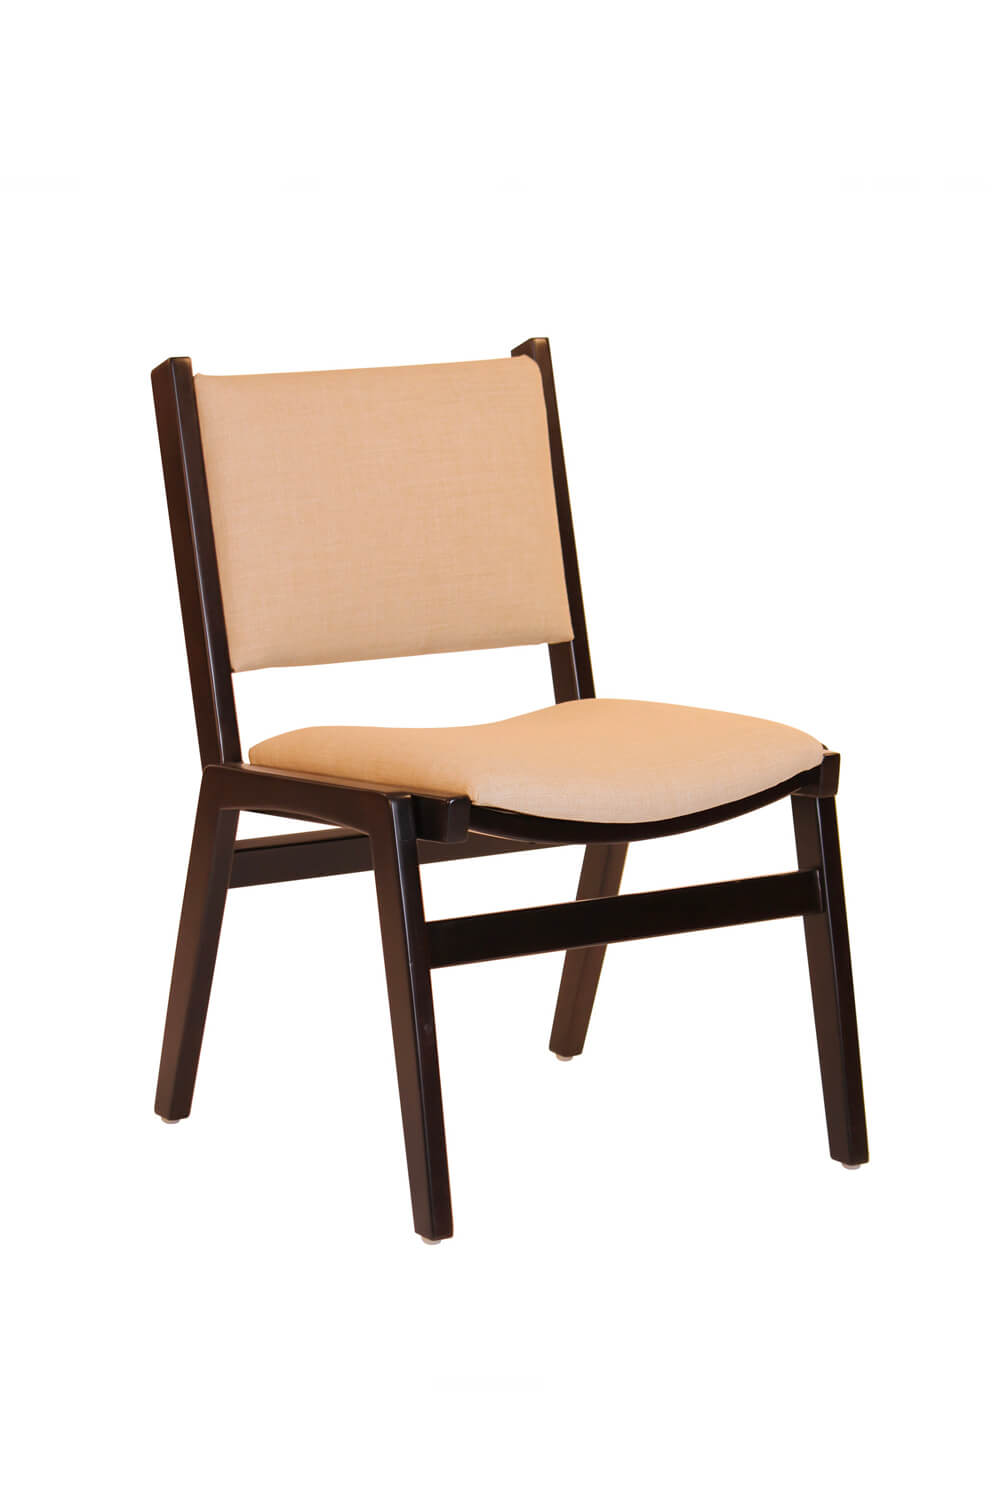 Darafeev's Spencer Upholstered Stacking Wood Chair